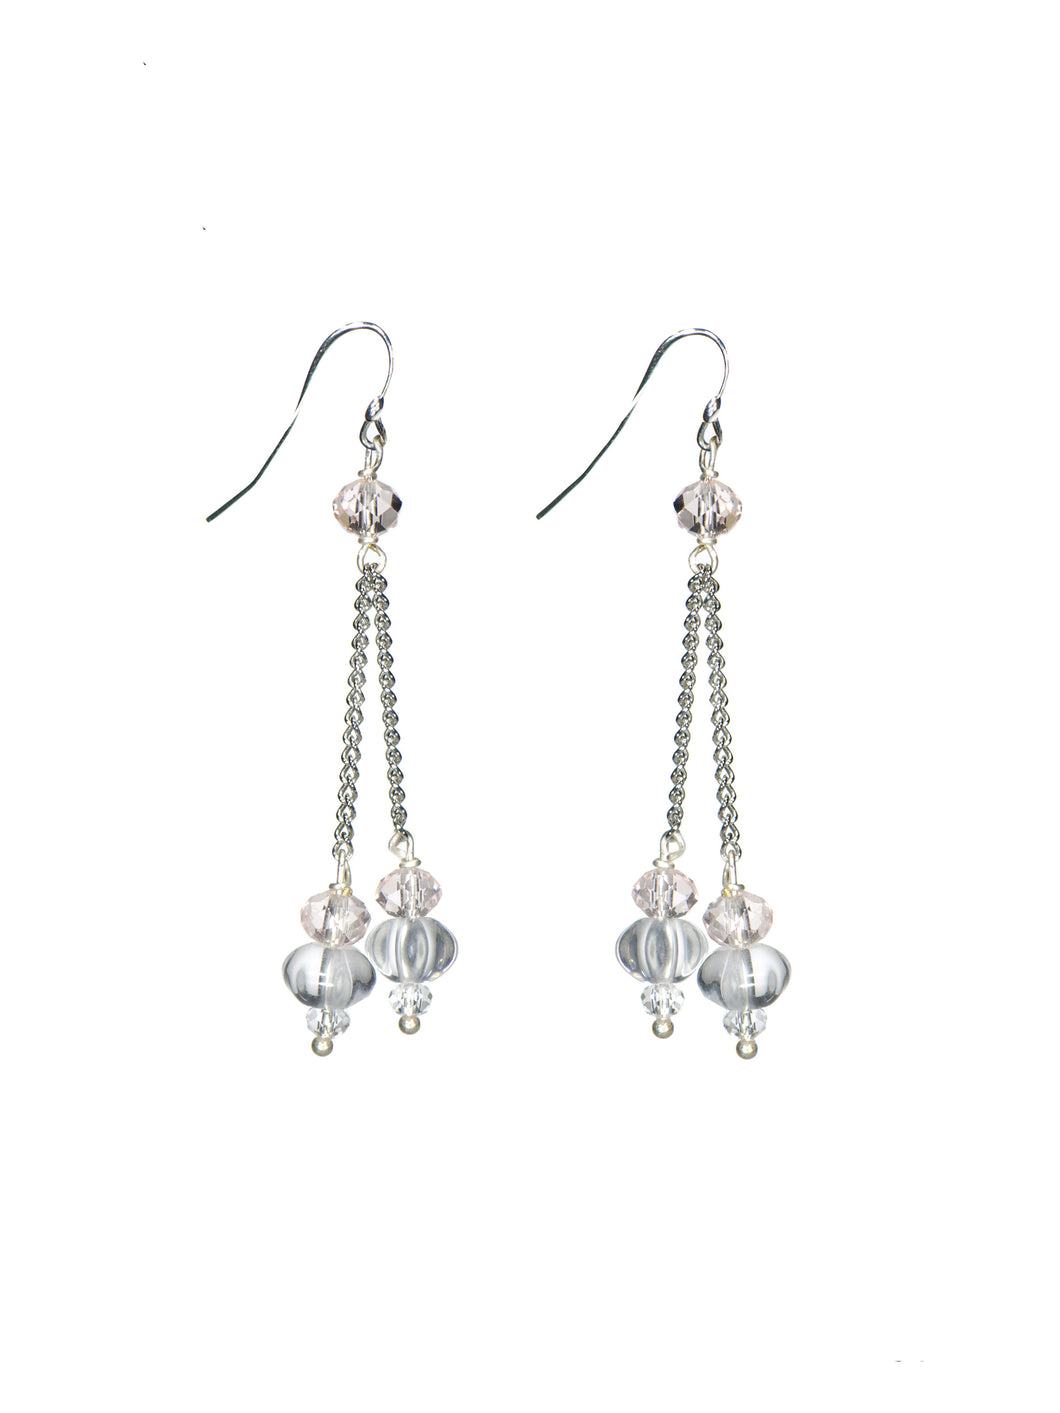 Blush Crystal Double Chain Earrings - Silver